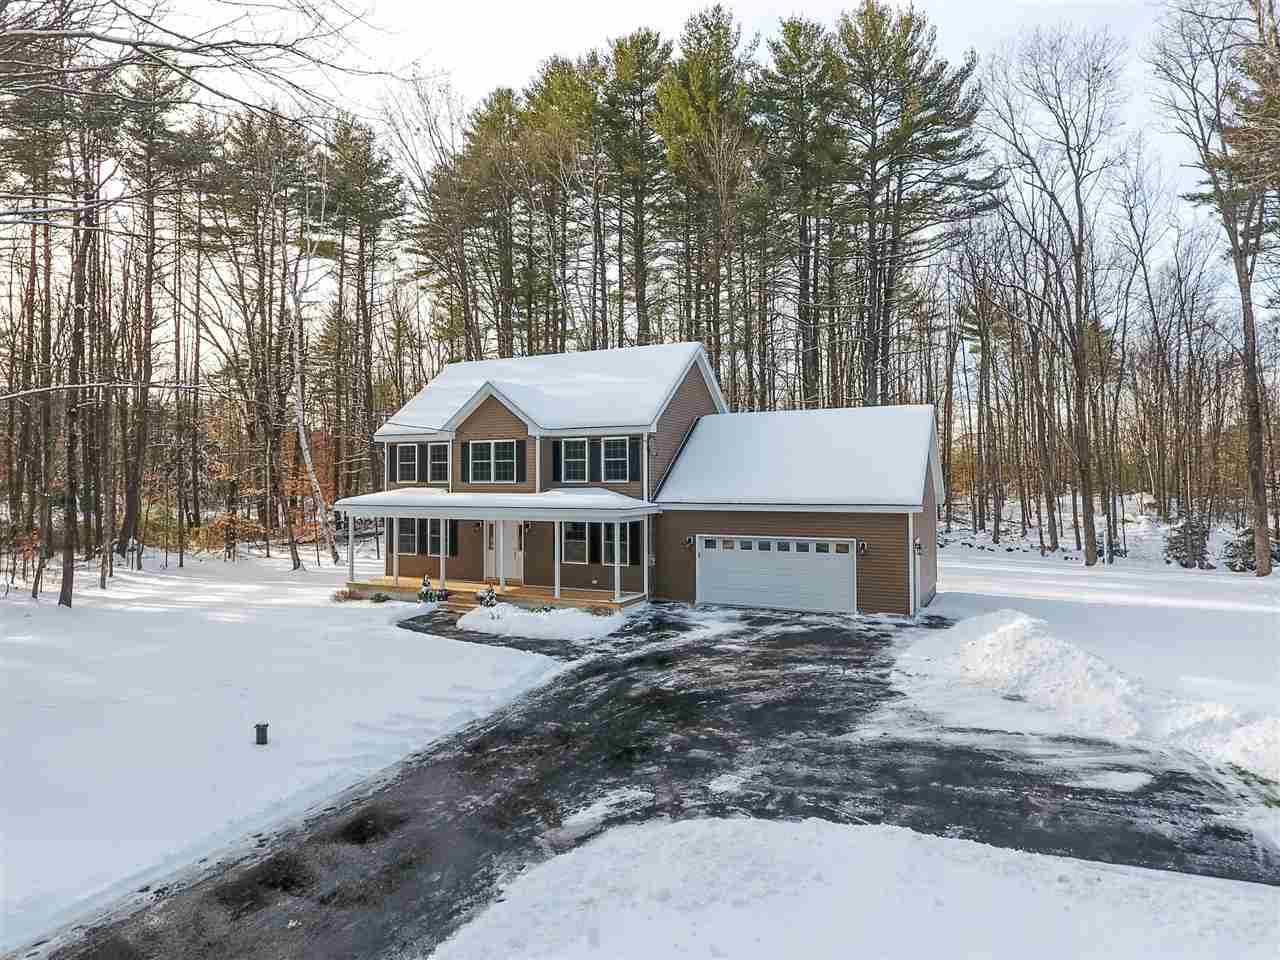 31 Old Shaker Road, Loudon, NH 03307